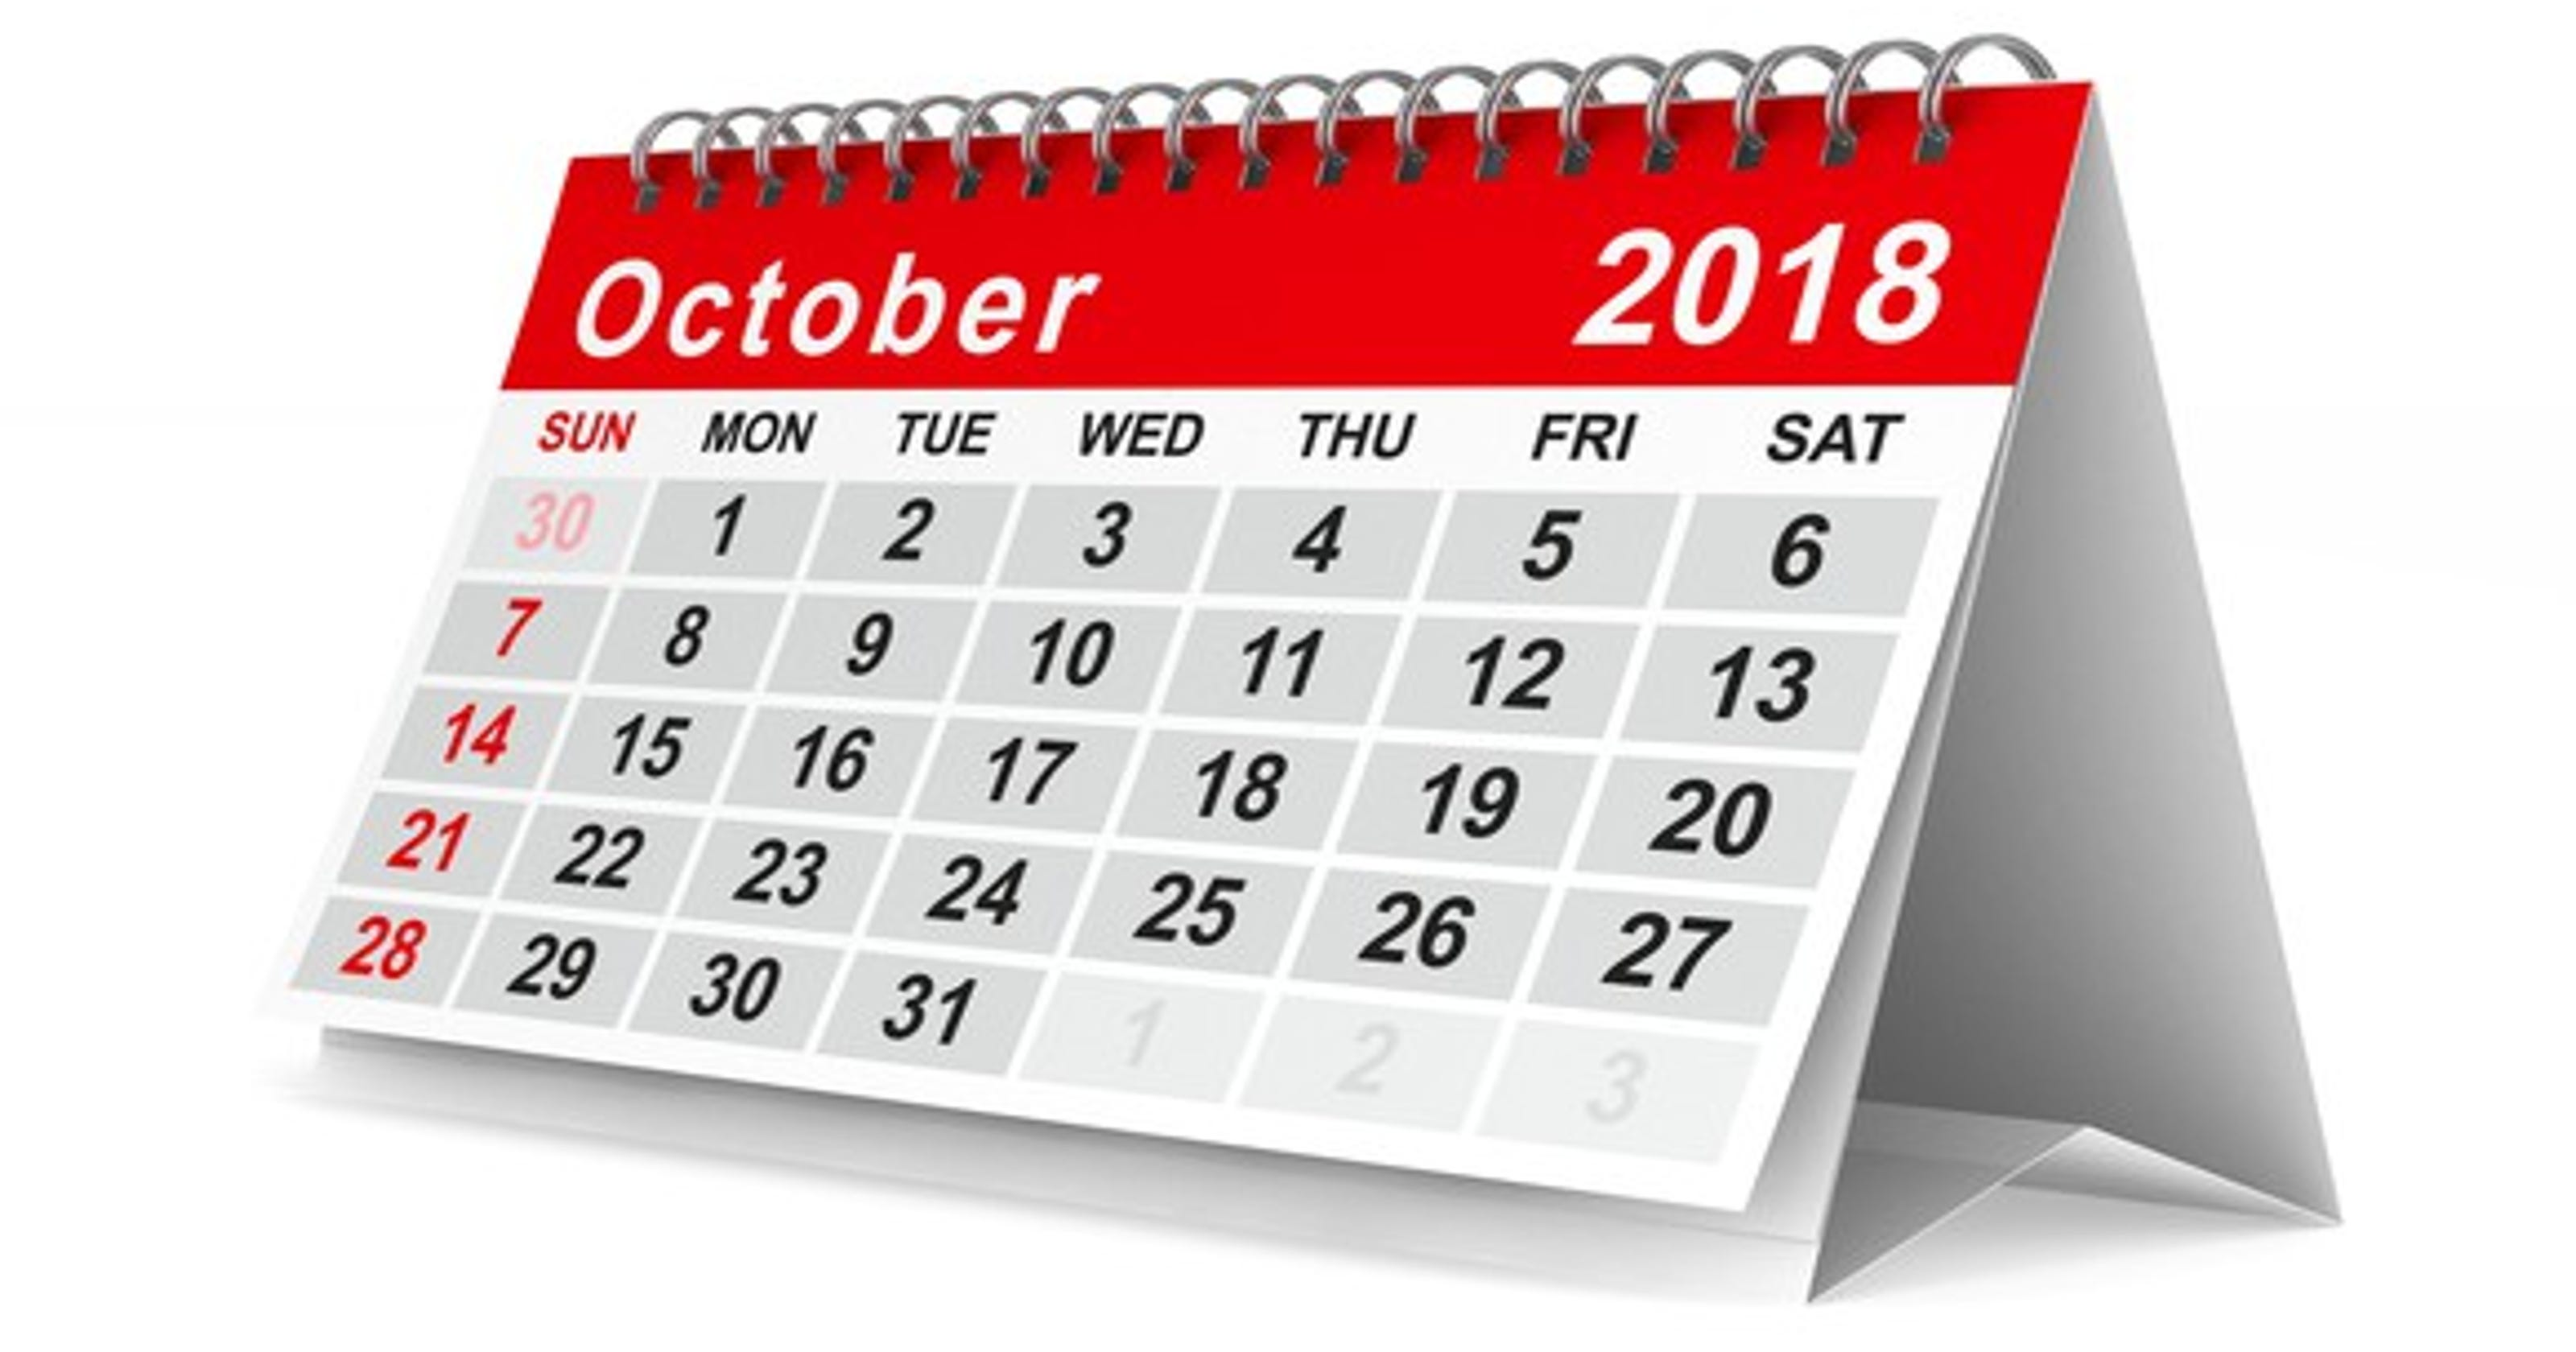 October 2018 Deals Mark Your Calendar For Savings And Freebies